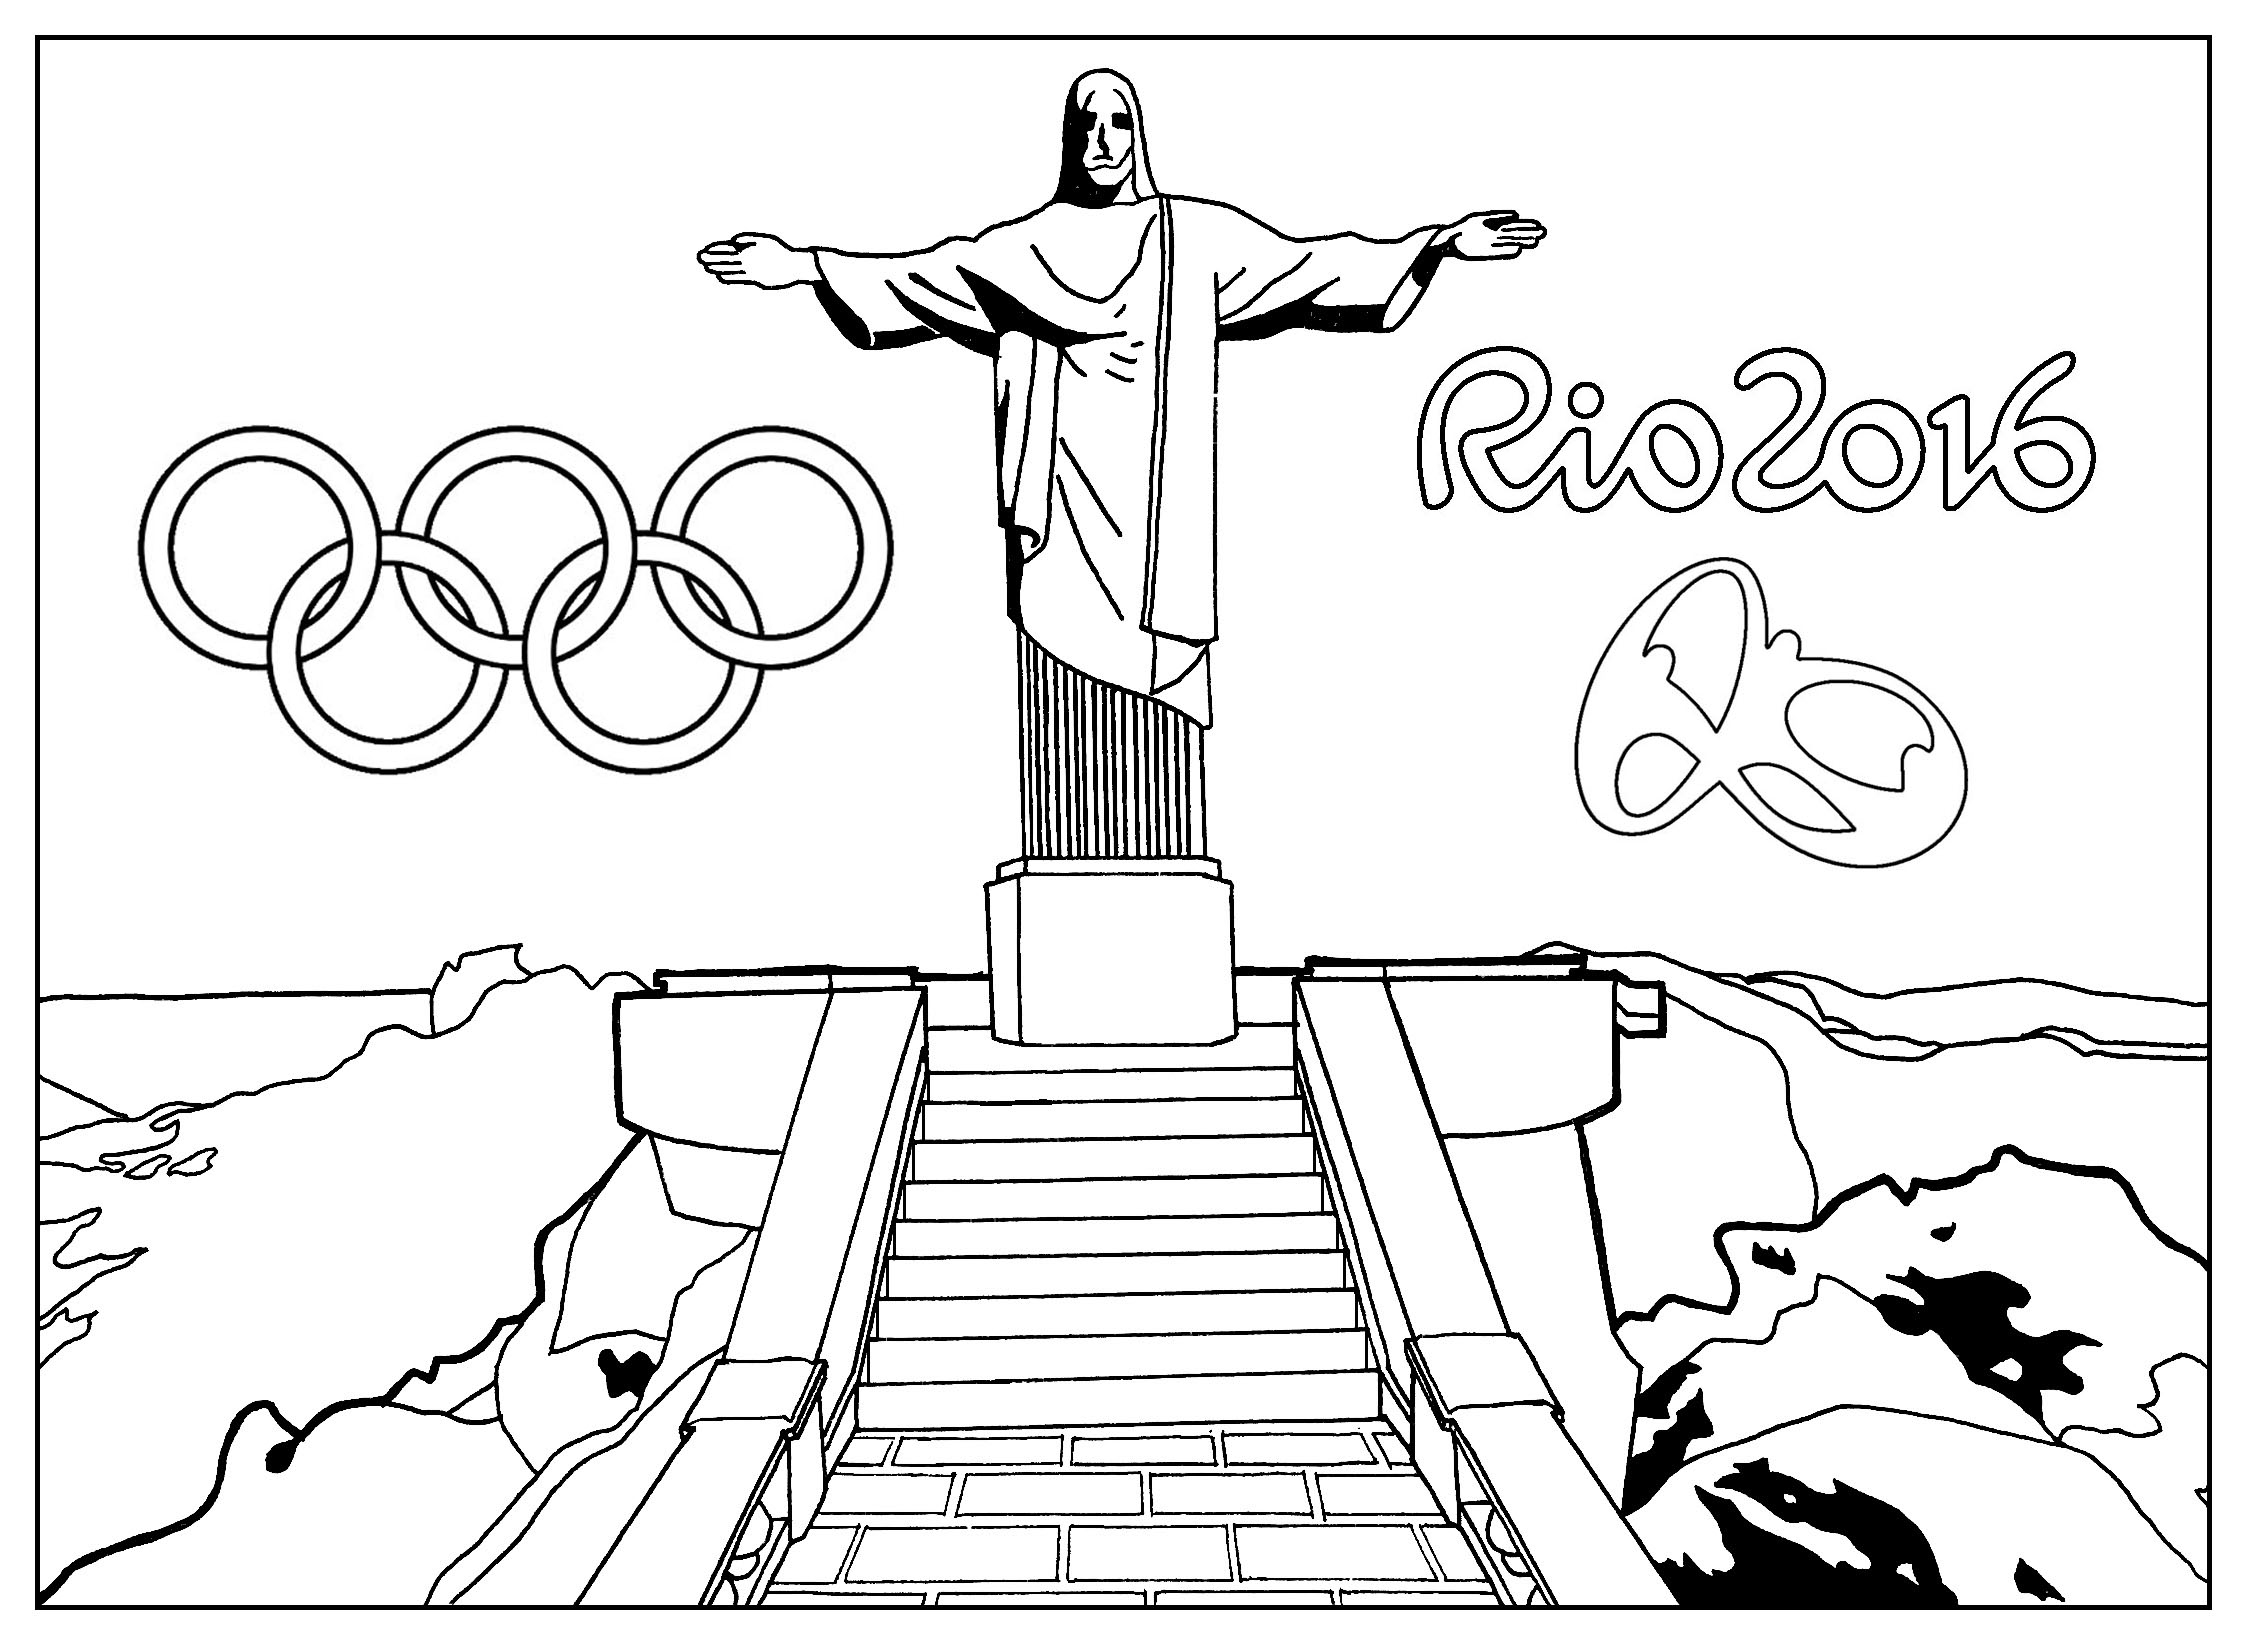 Rio 2016 Olympic Games Christ the Redeemer Statue Olympic & Sport Collection Of Olympic Swimming Coloring Pages Best Coloring Pages Games Image Printable